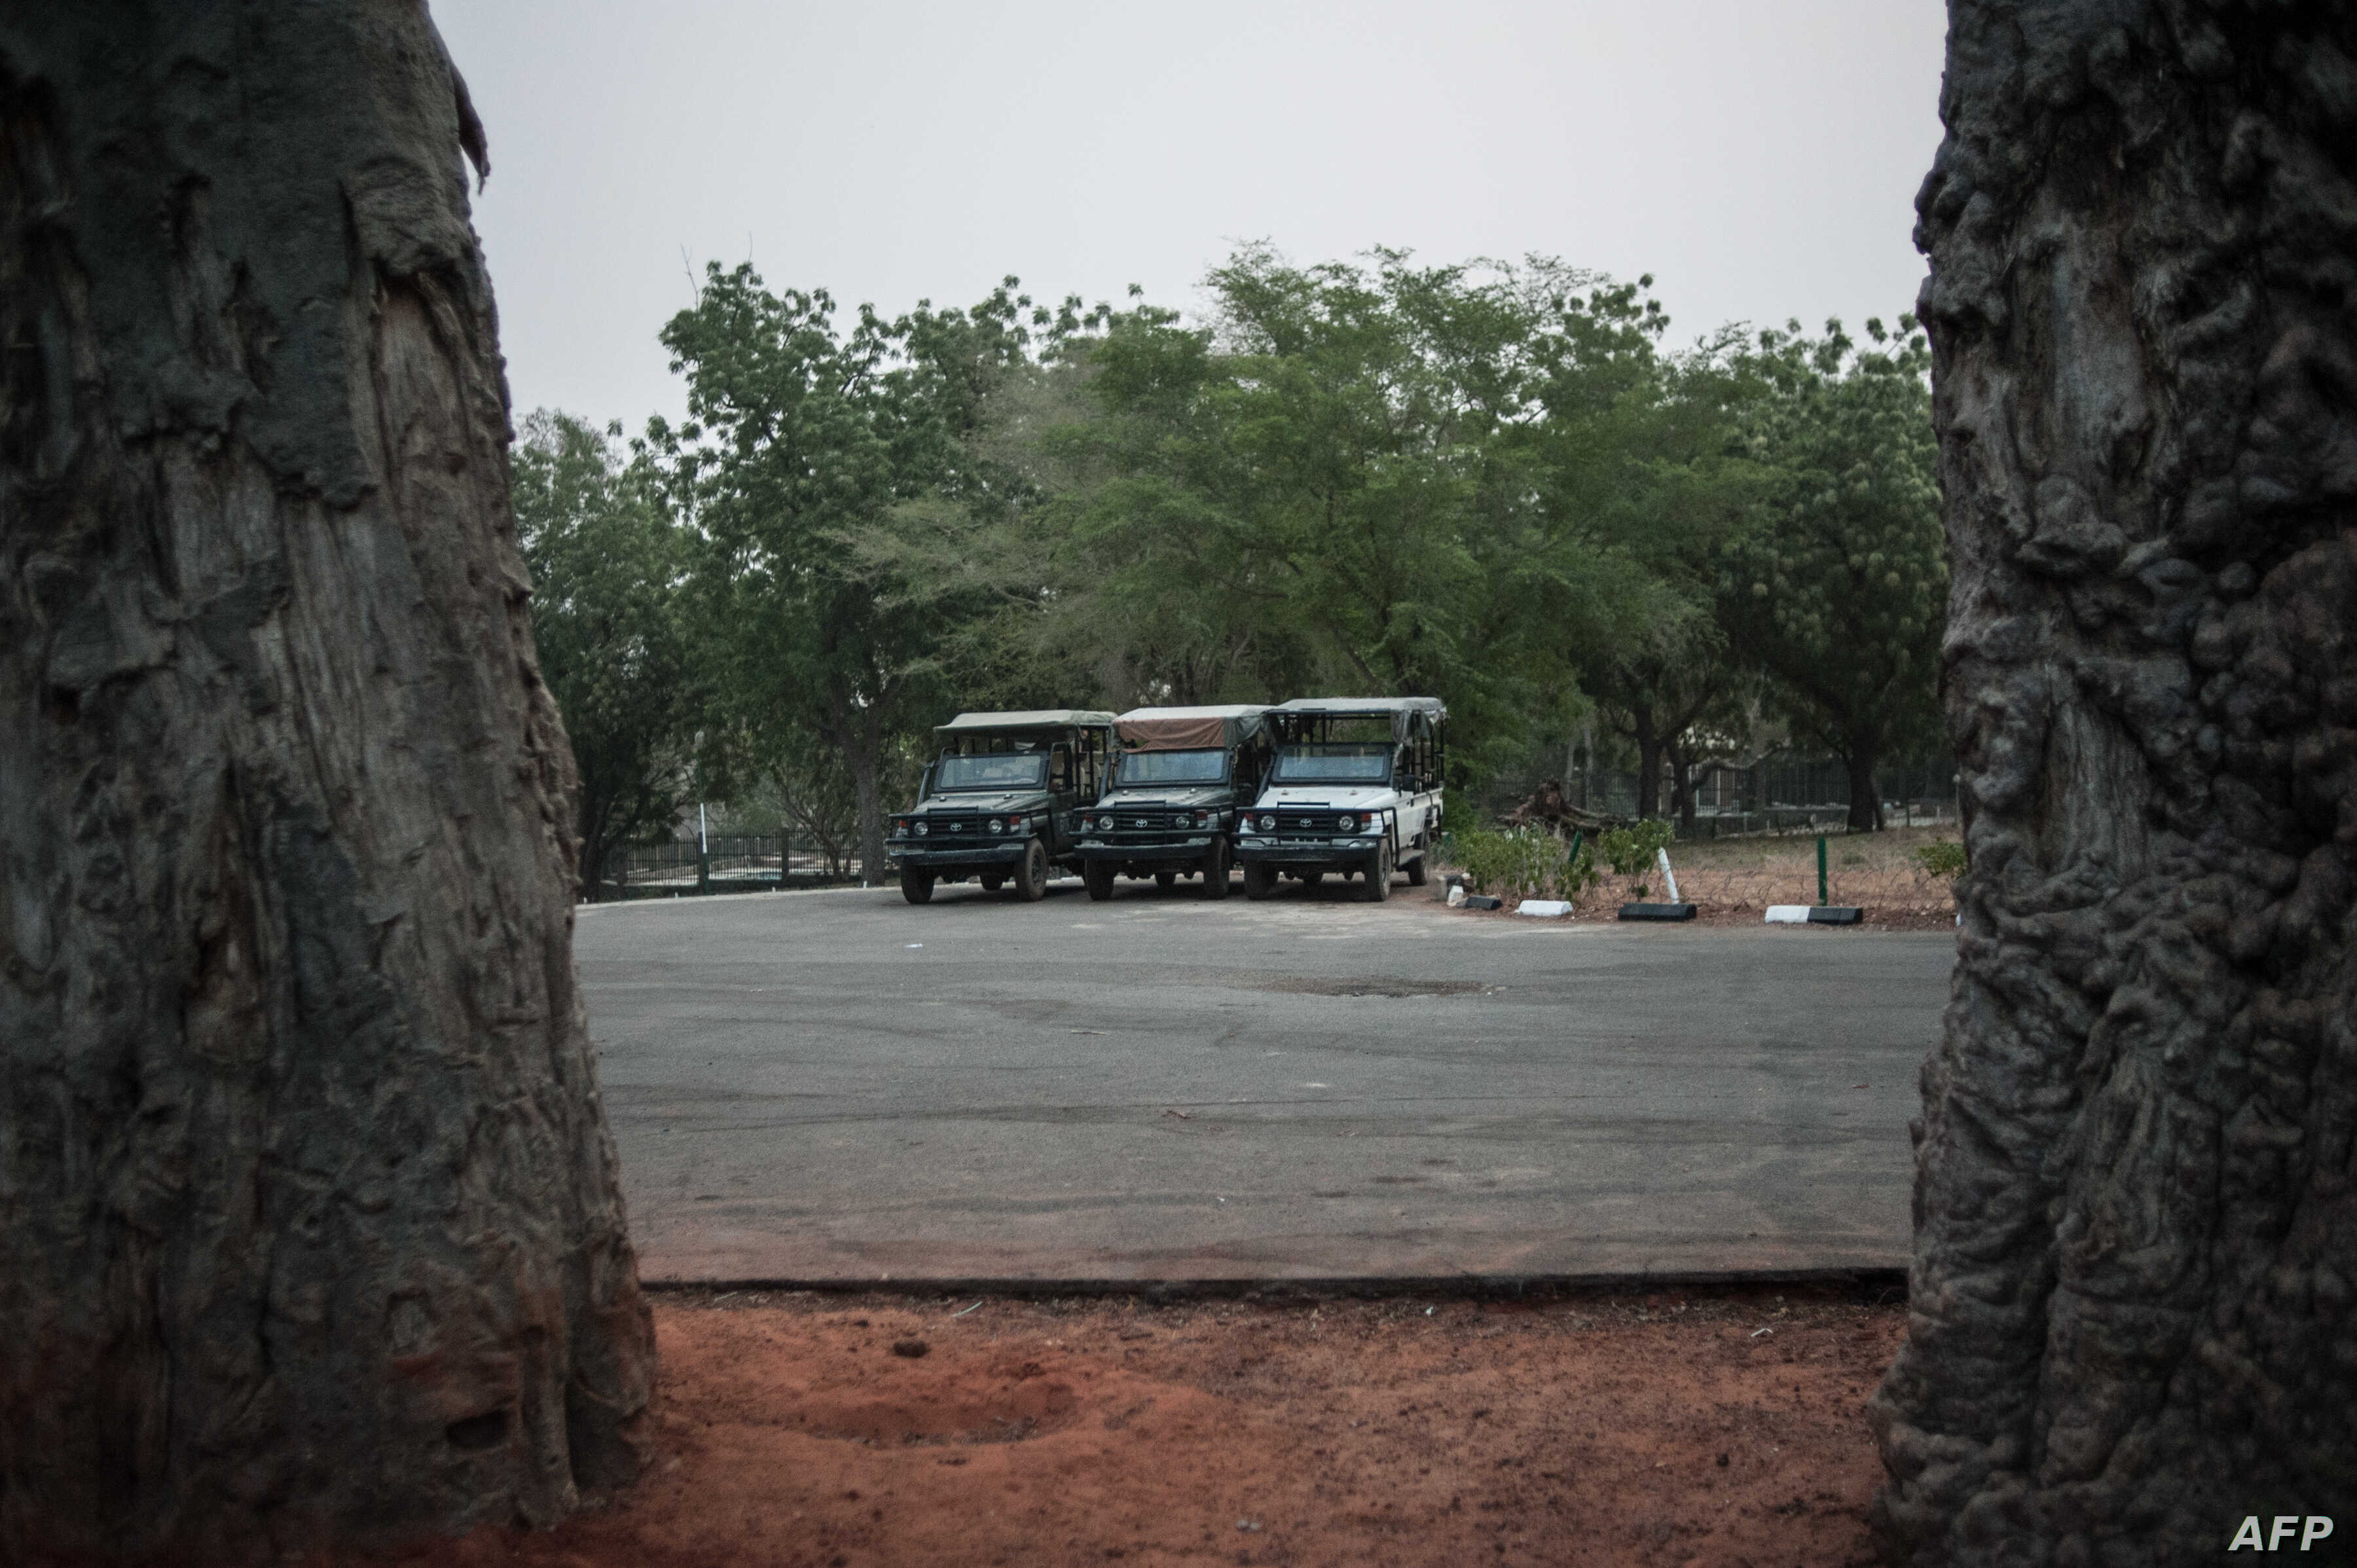 FILE - Game-viewing vehicles are parked and ready to take tourists through Yankari Game Reserve in the northeastern Nigeria, March 4, 2016.